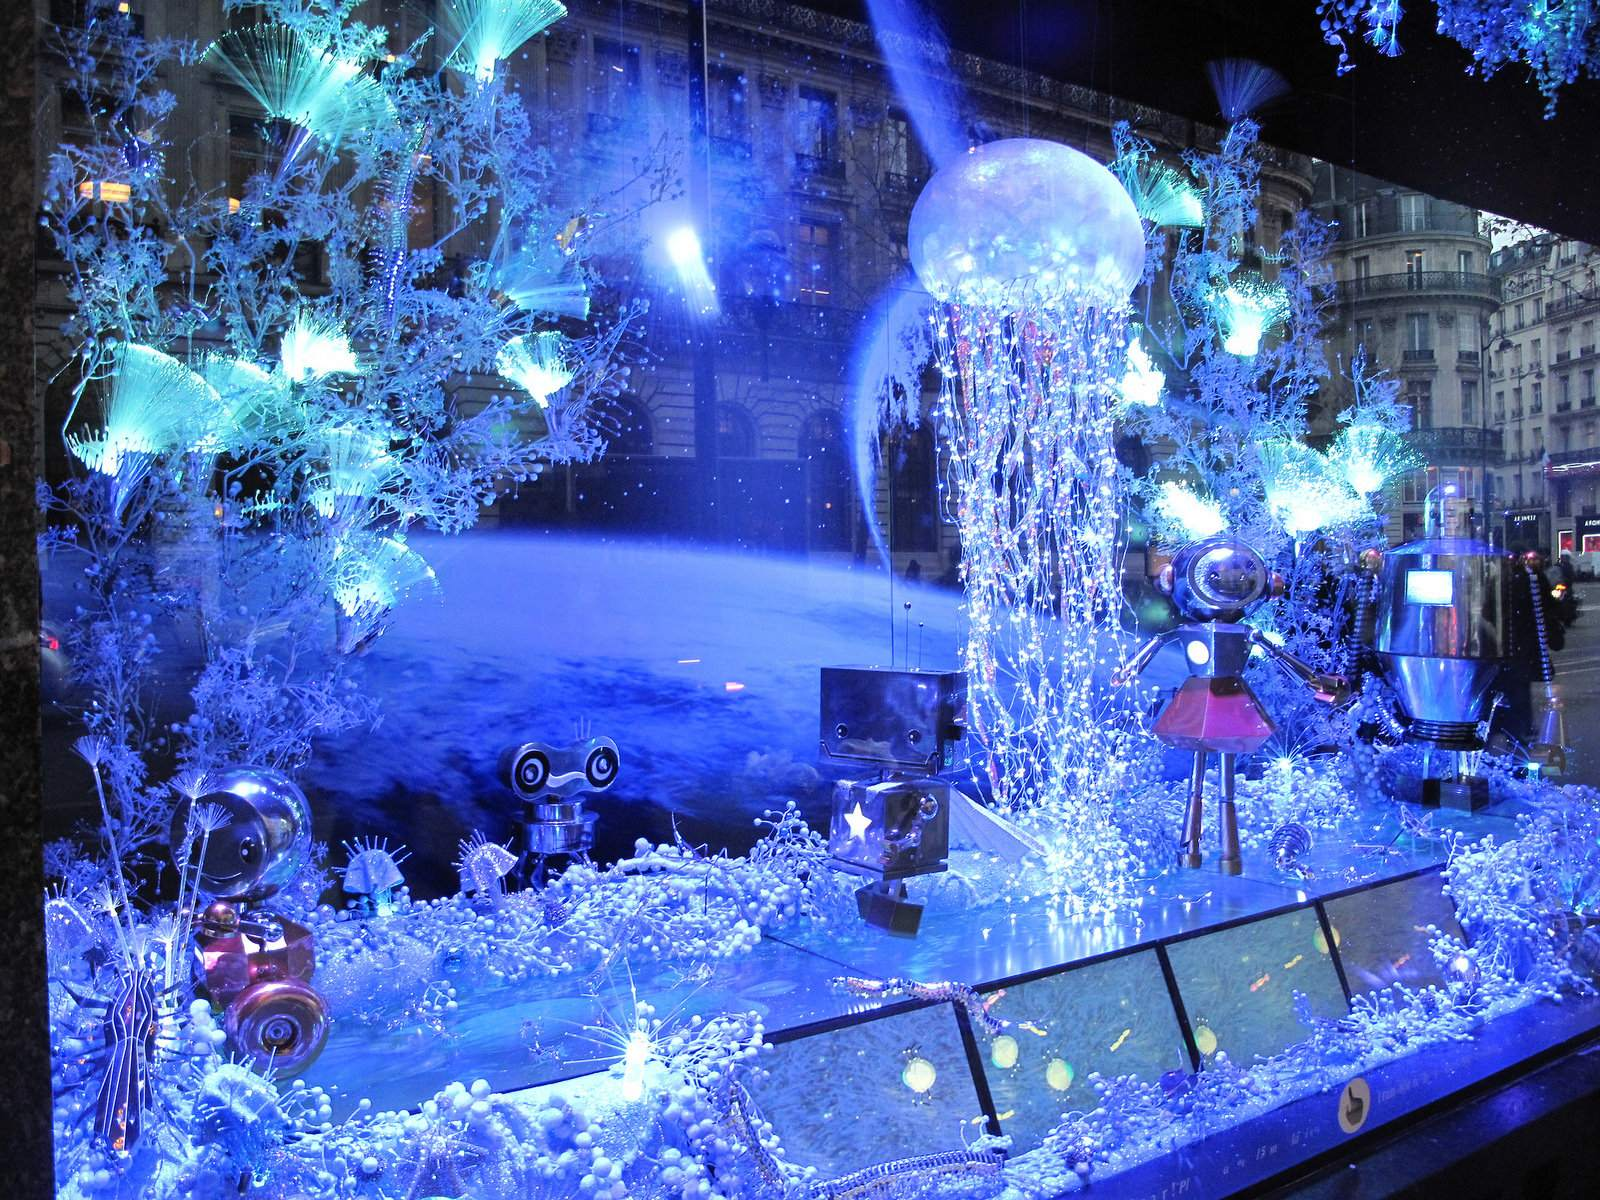 vitrines noel Christmas window displays in Paris